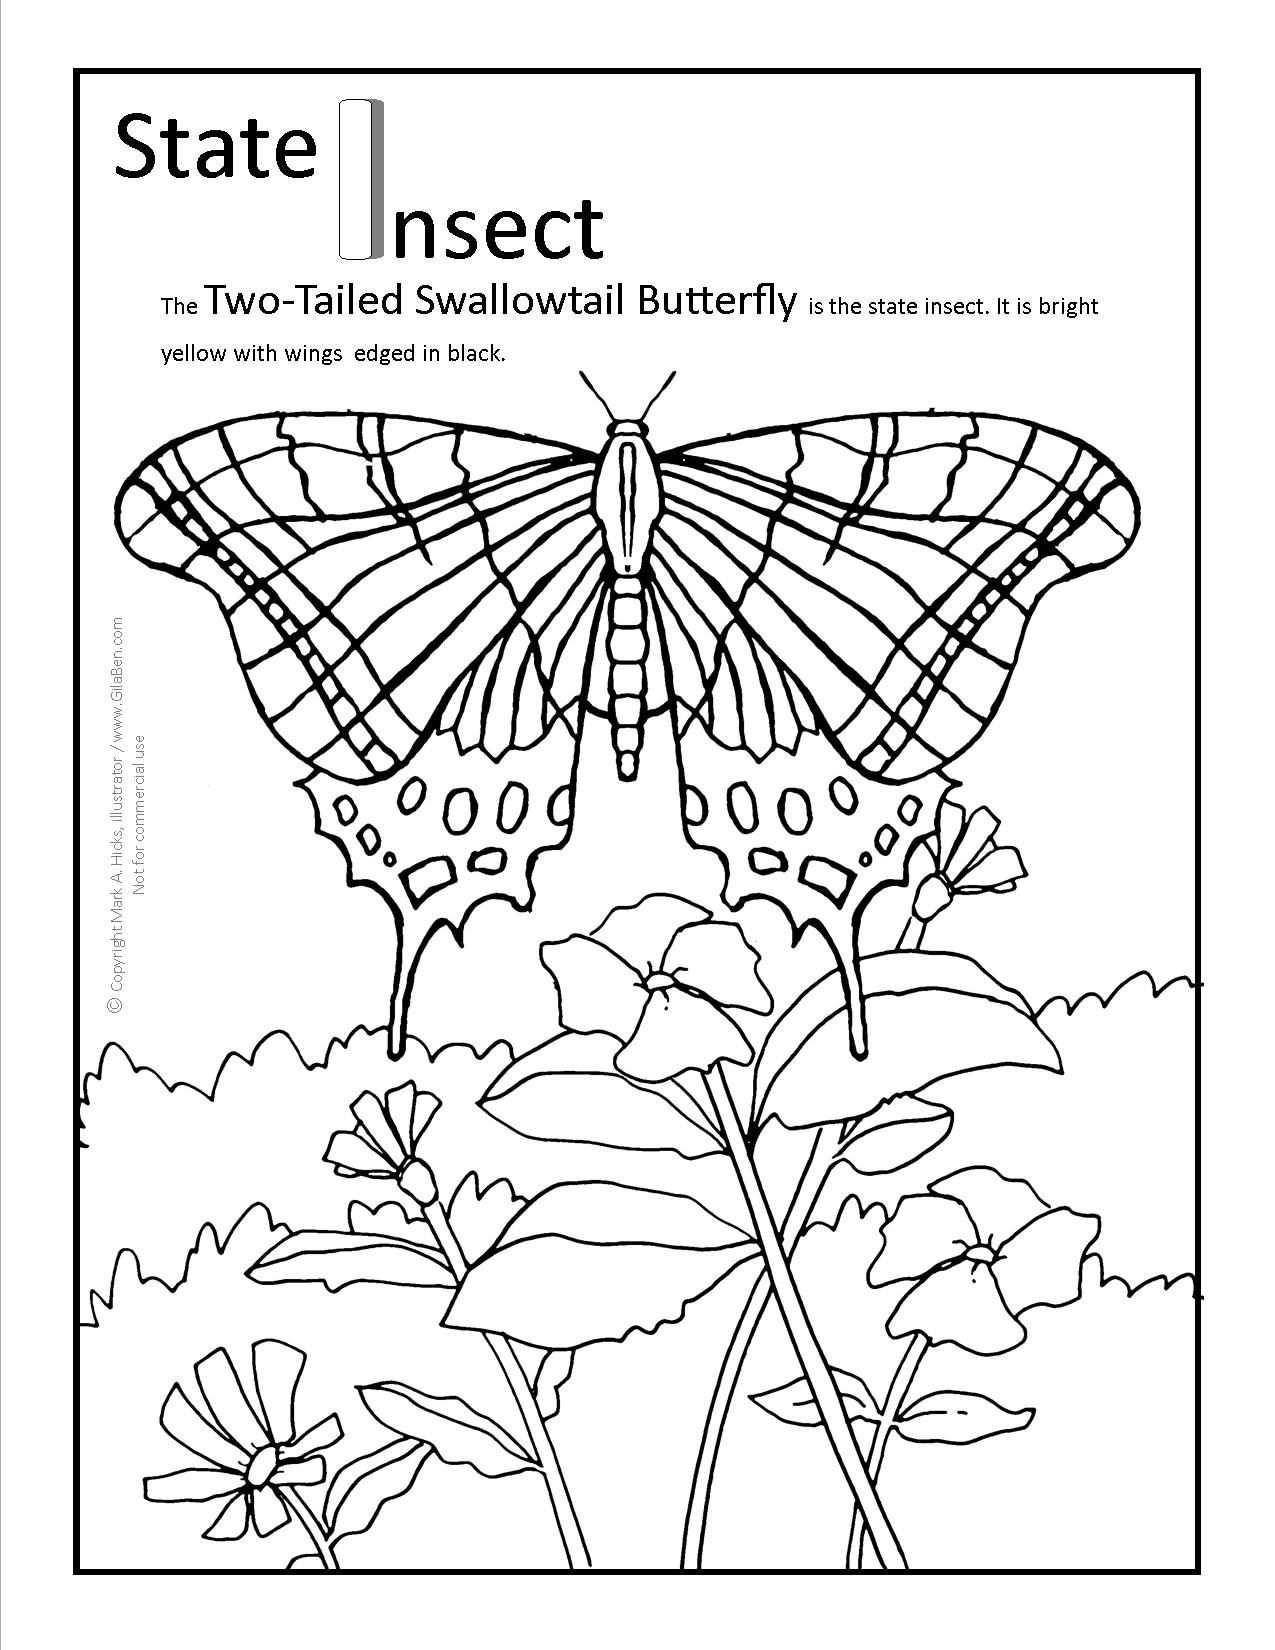 Butterfly coloring page symmetry - Arizona Coloring Pages To Download Or Print The Arizona State Butterfly Coloring Page Pdf